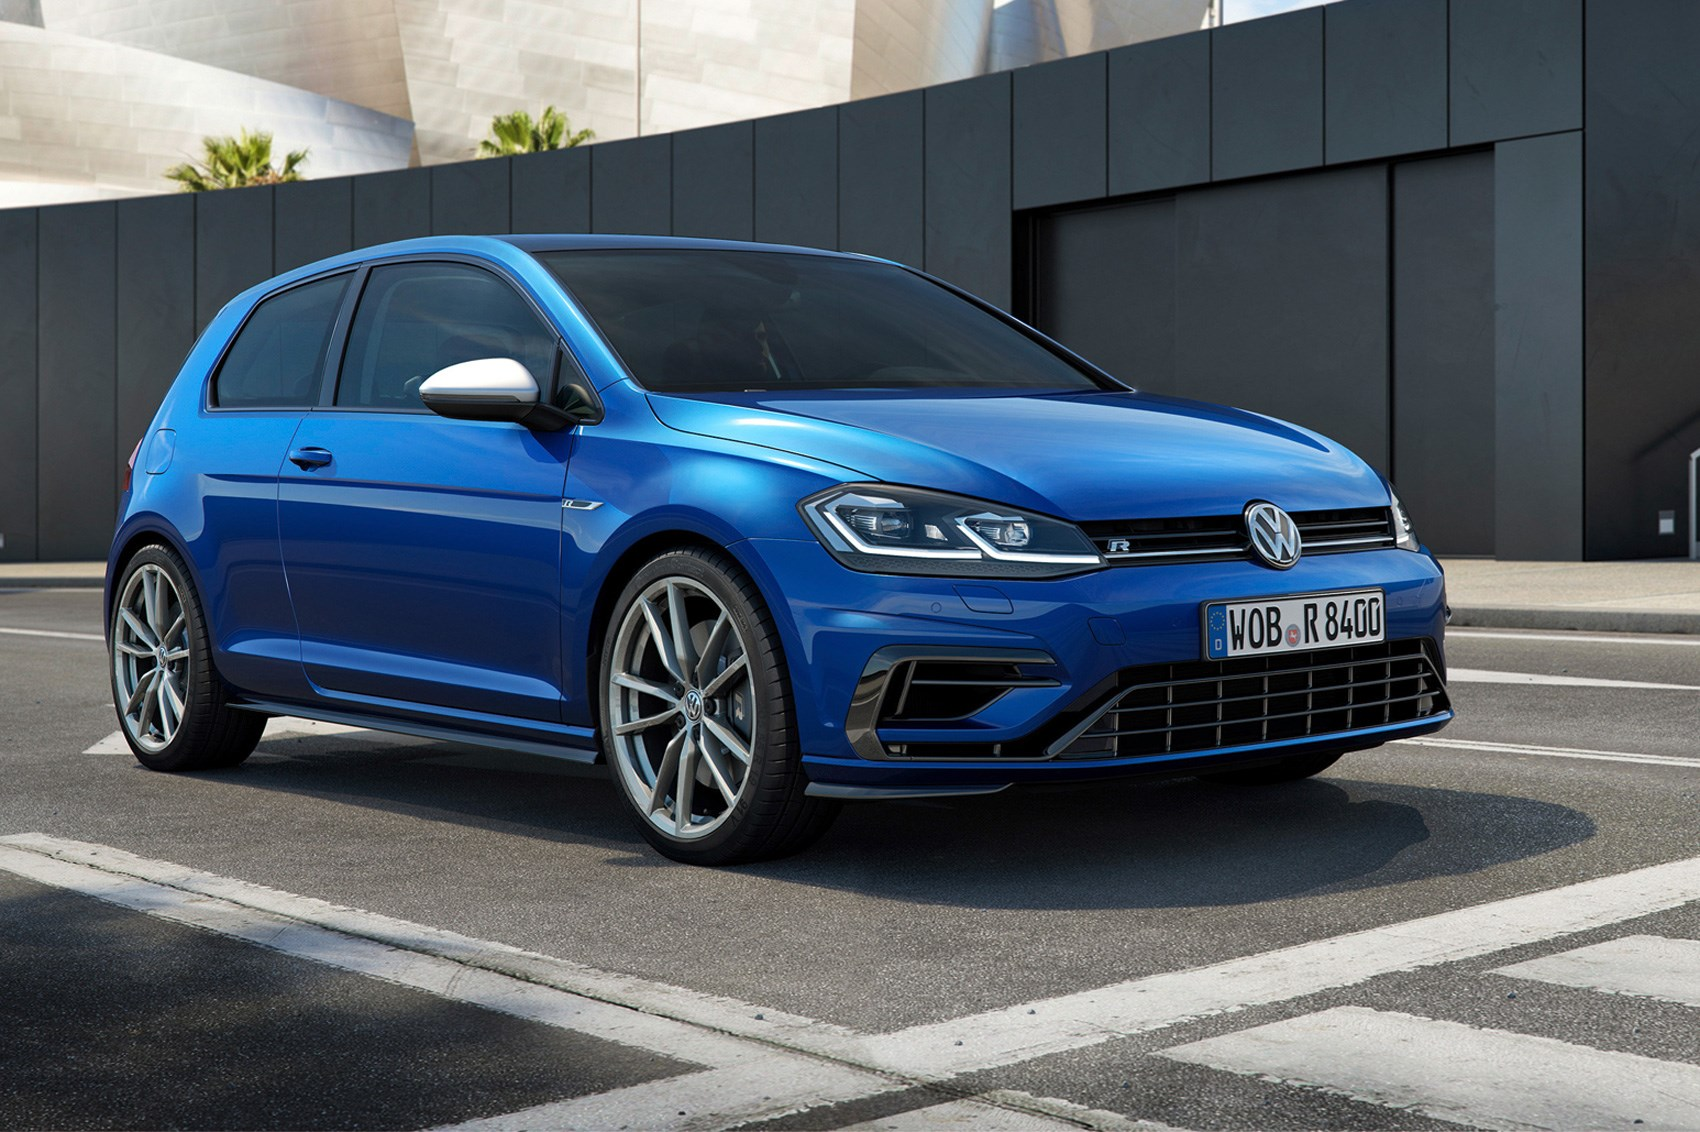 new ish vw golf r for 2017 fast golf gets a facelift by car magazine. Black Bedroom Furniture Sets. Home Design Ideas